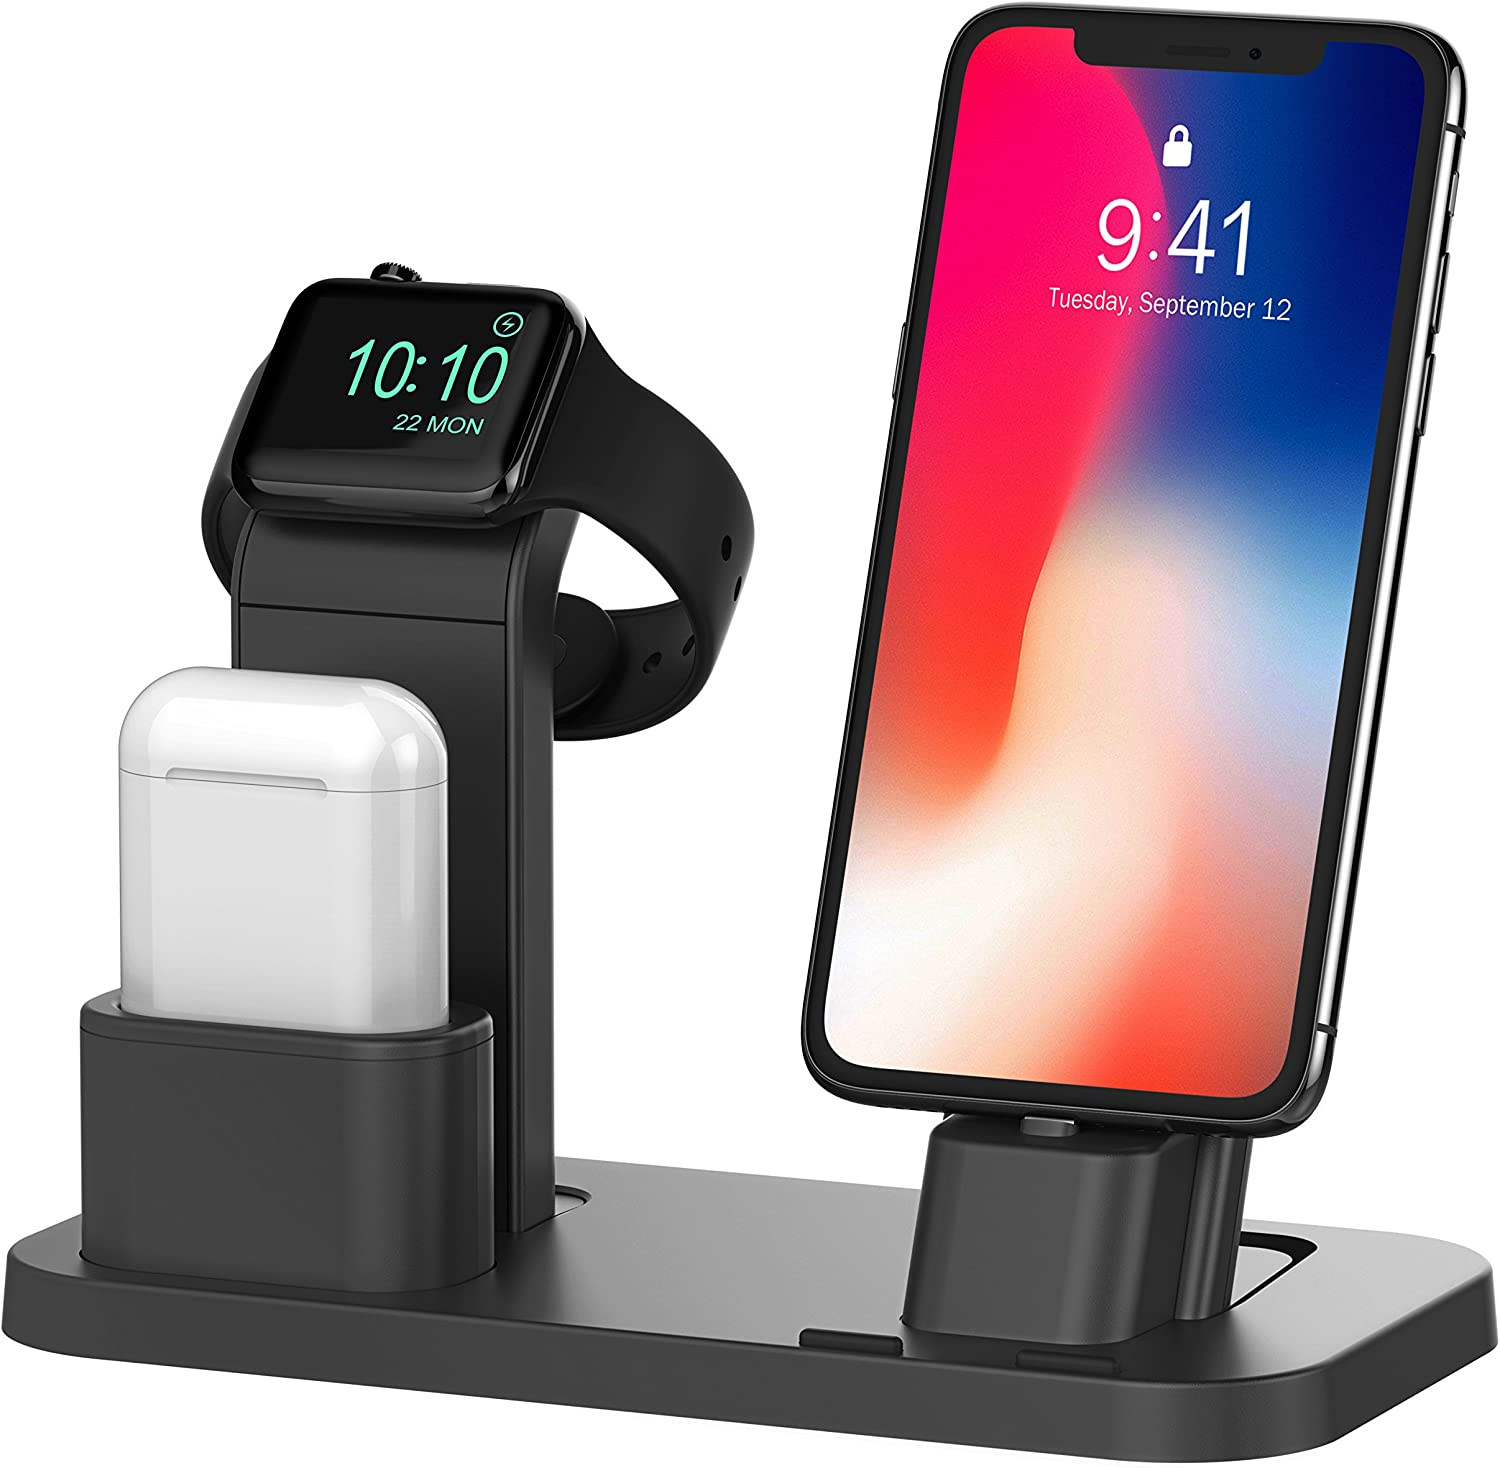 BEACOO Stand for iwatch 5  Charging Stand Dock Station for AirPods Stand Charging Docks Holder  Support for iwatch 5 4 3 2 1 NightStand Mode and for iPhone 11 X 7 7plus SE 5s 6S